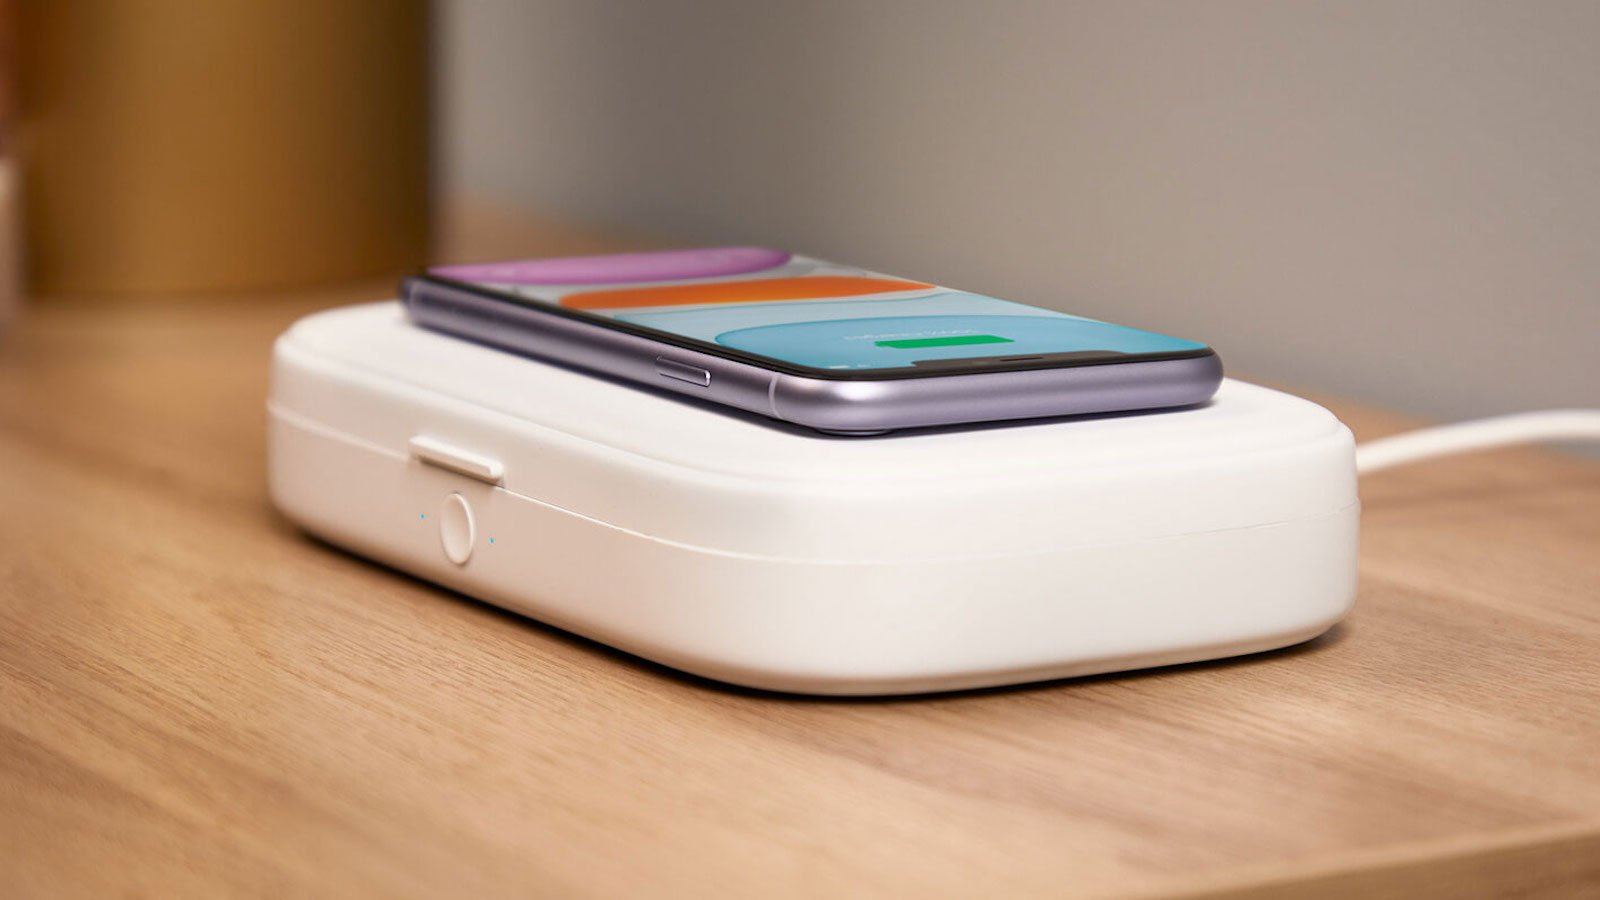 Belkin BOOST↑CHARGE UV Sanitizer + Wireless Charger charges and sanitizes your phone